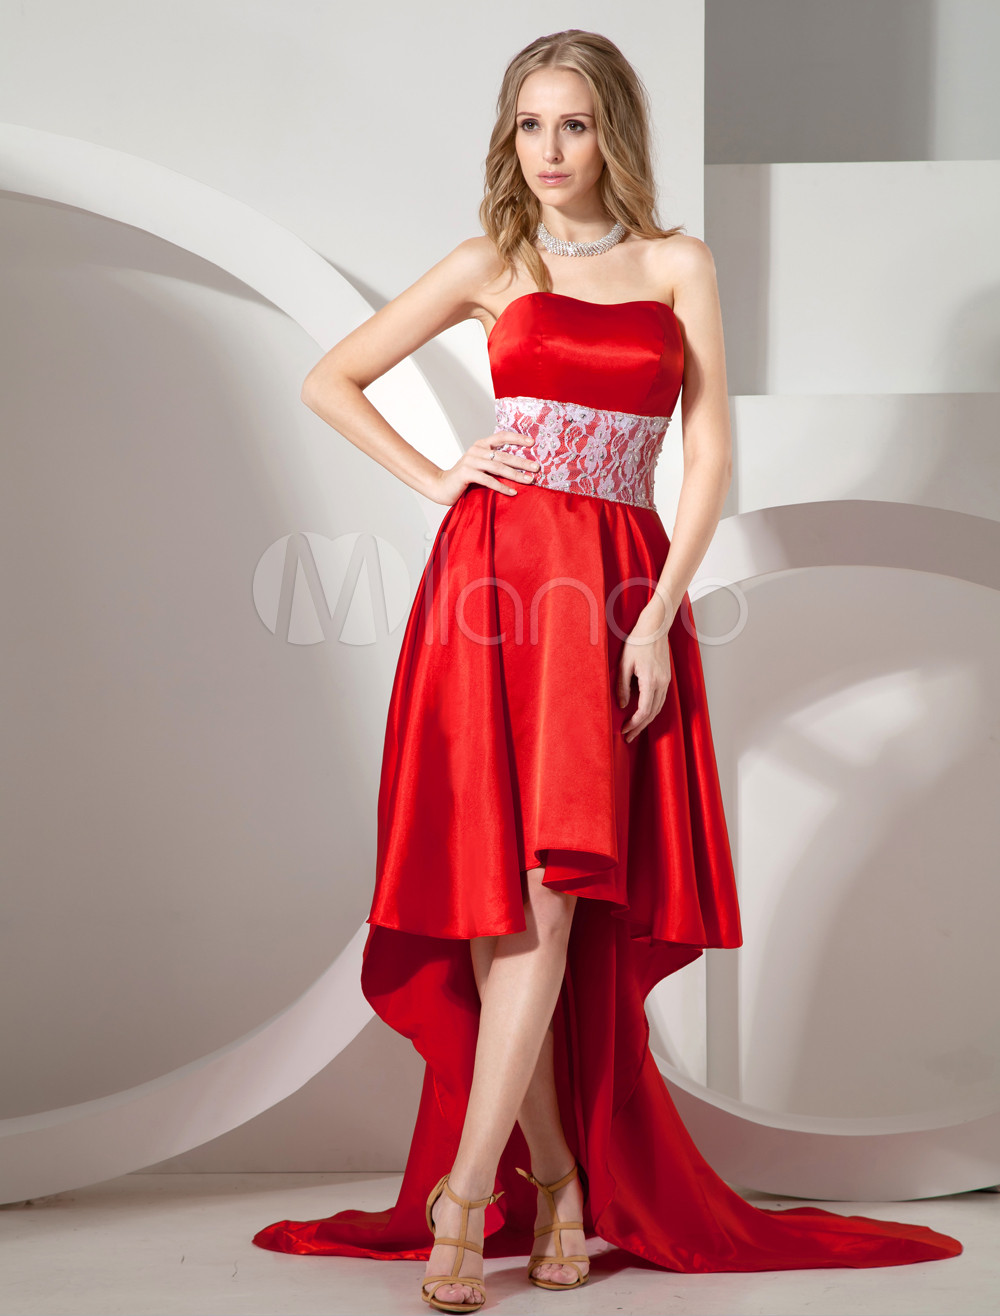 Red Lace & Satin Prom Dress (Wedding Cheap Party Dress) photo